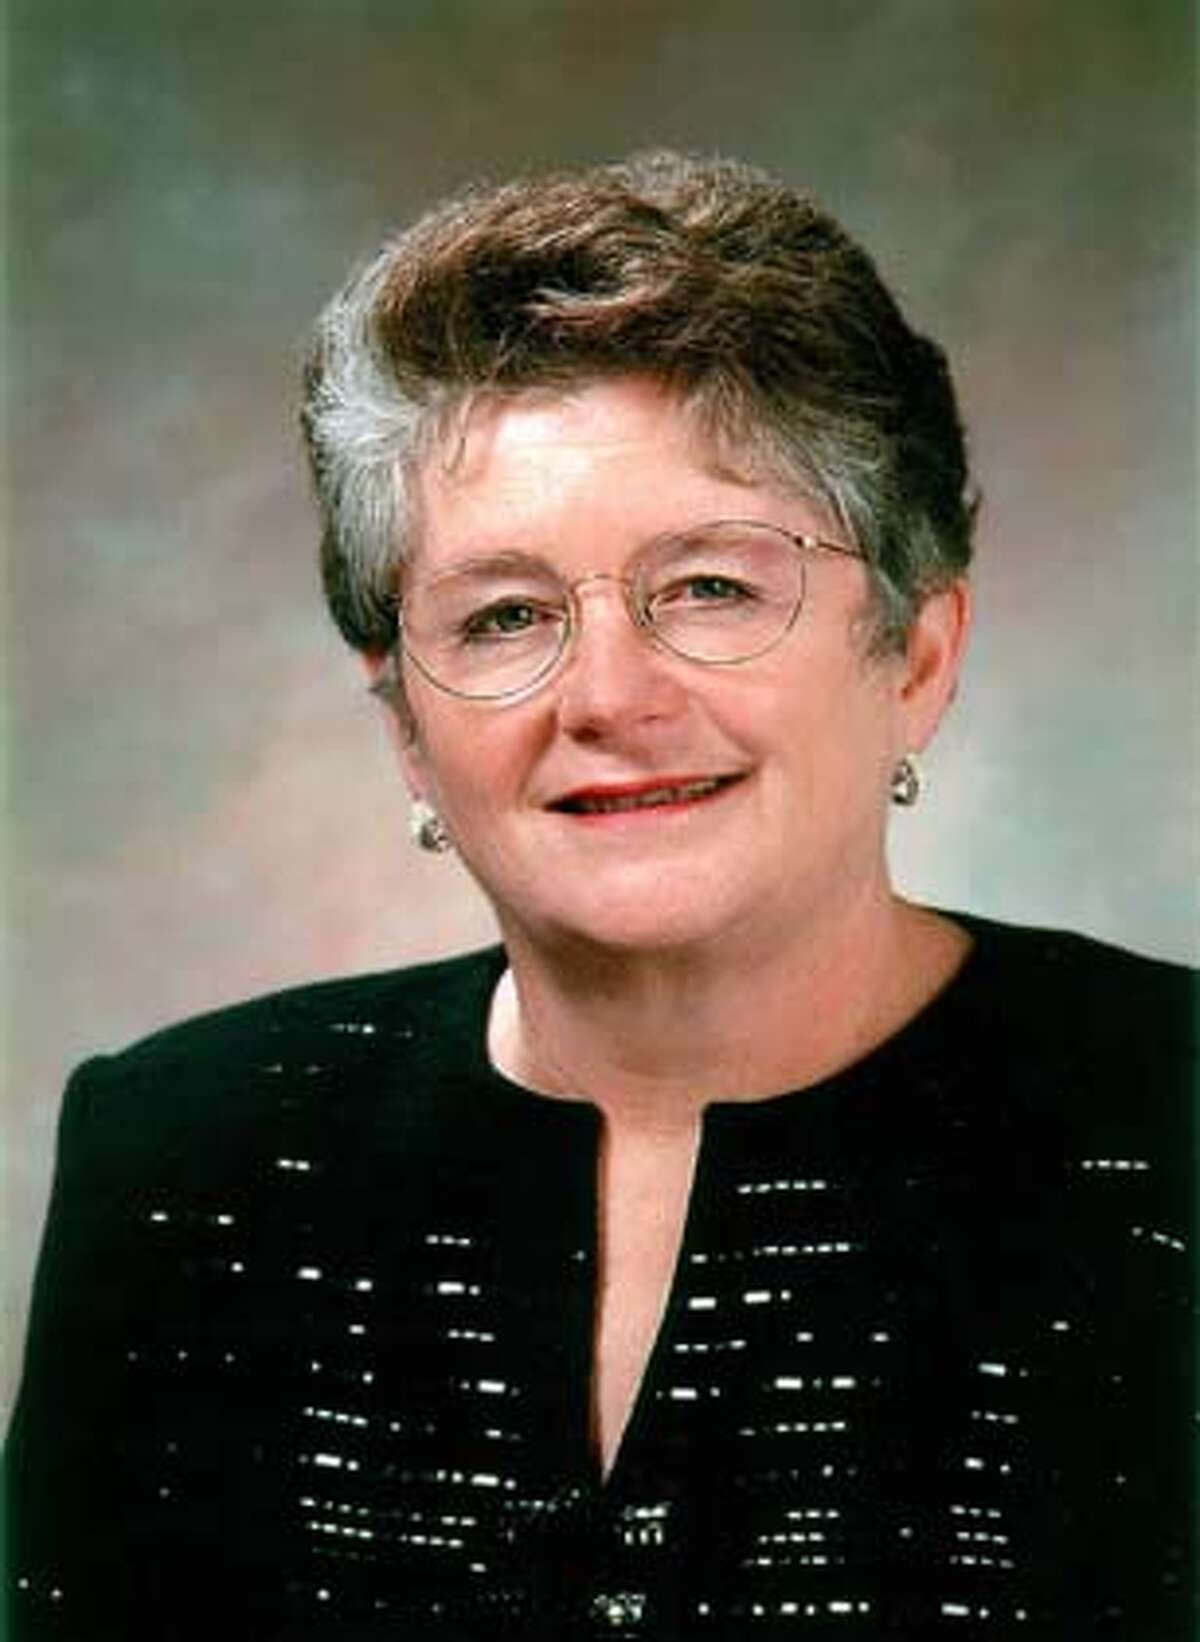 M.R.C. Greenwood is provost and senior vice president for academic affairs for the 10-campus UC system. Ran on: 11-05-2005 M.R.C. Greenwood, UC provost, is being investigated for promoting her friend, Lynda Goff. Ran on: 11-05-2005 M.R.C. Greenwood, UC provost, is being investigated for promoting her friend, Lynda Goff.